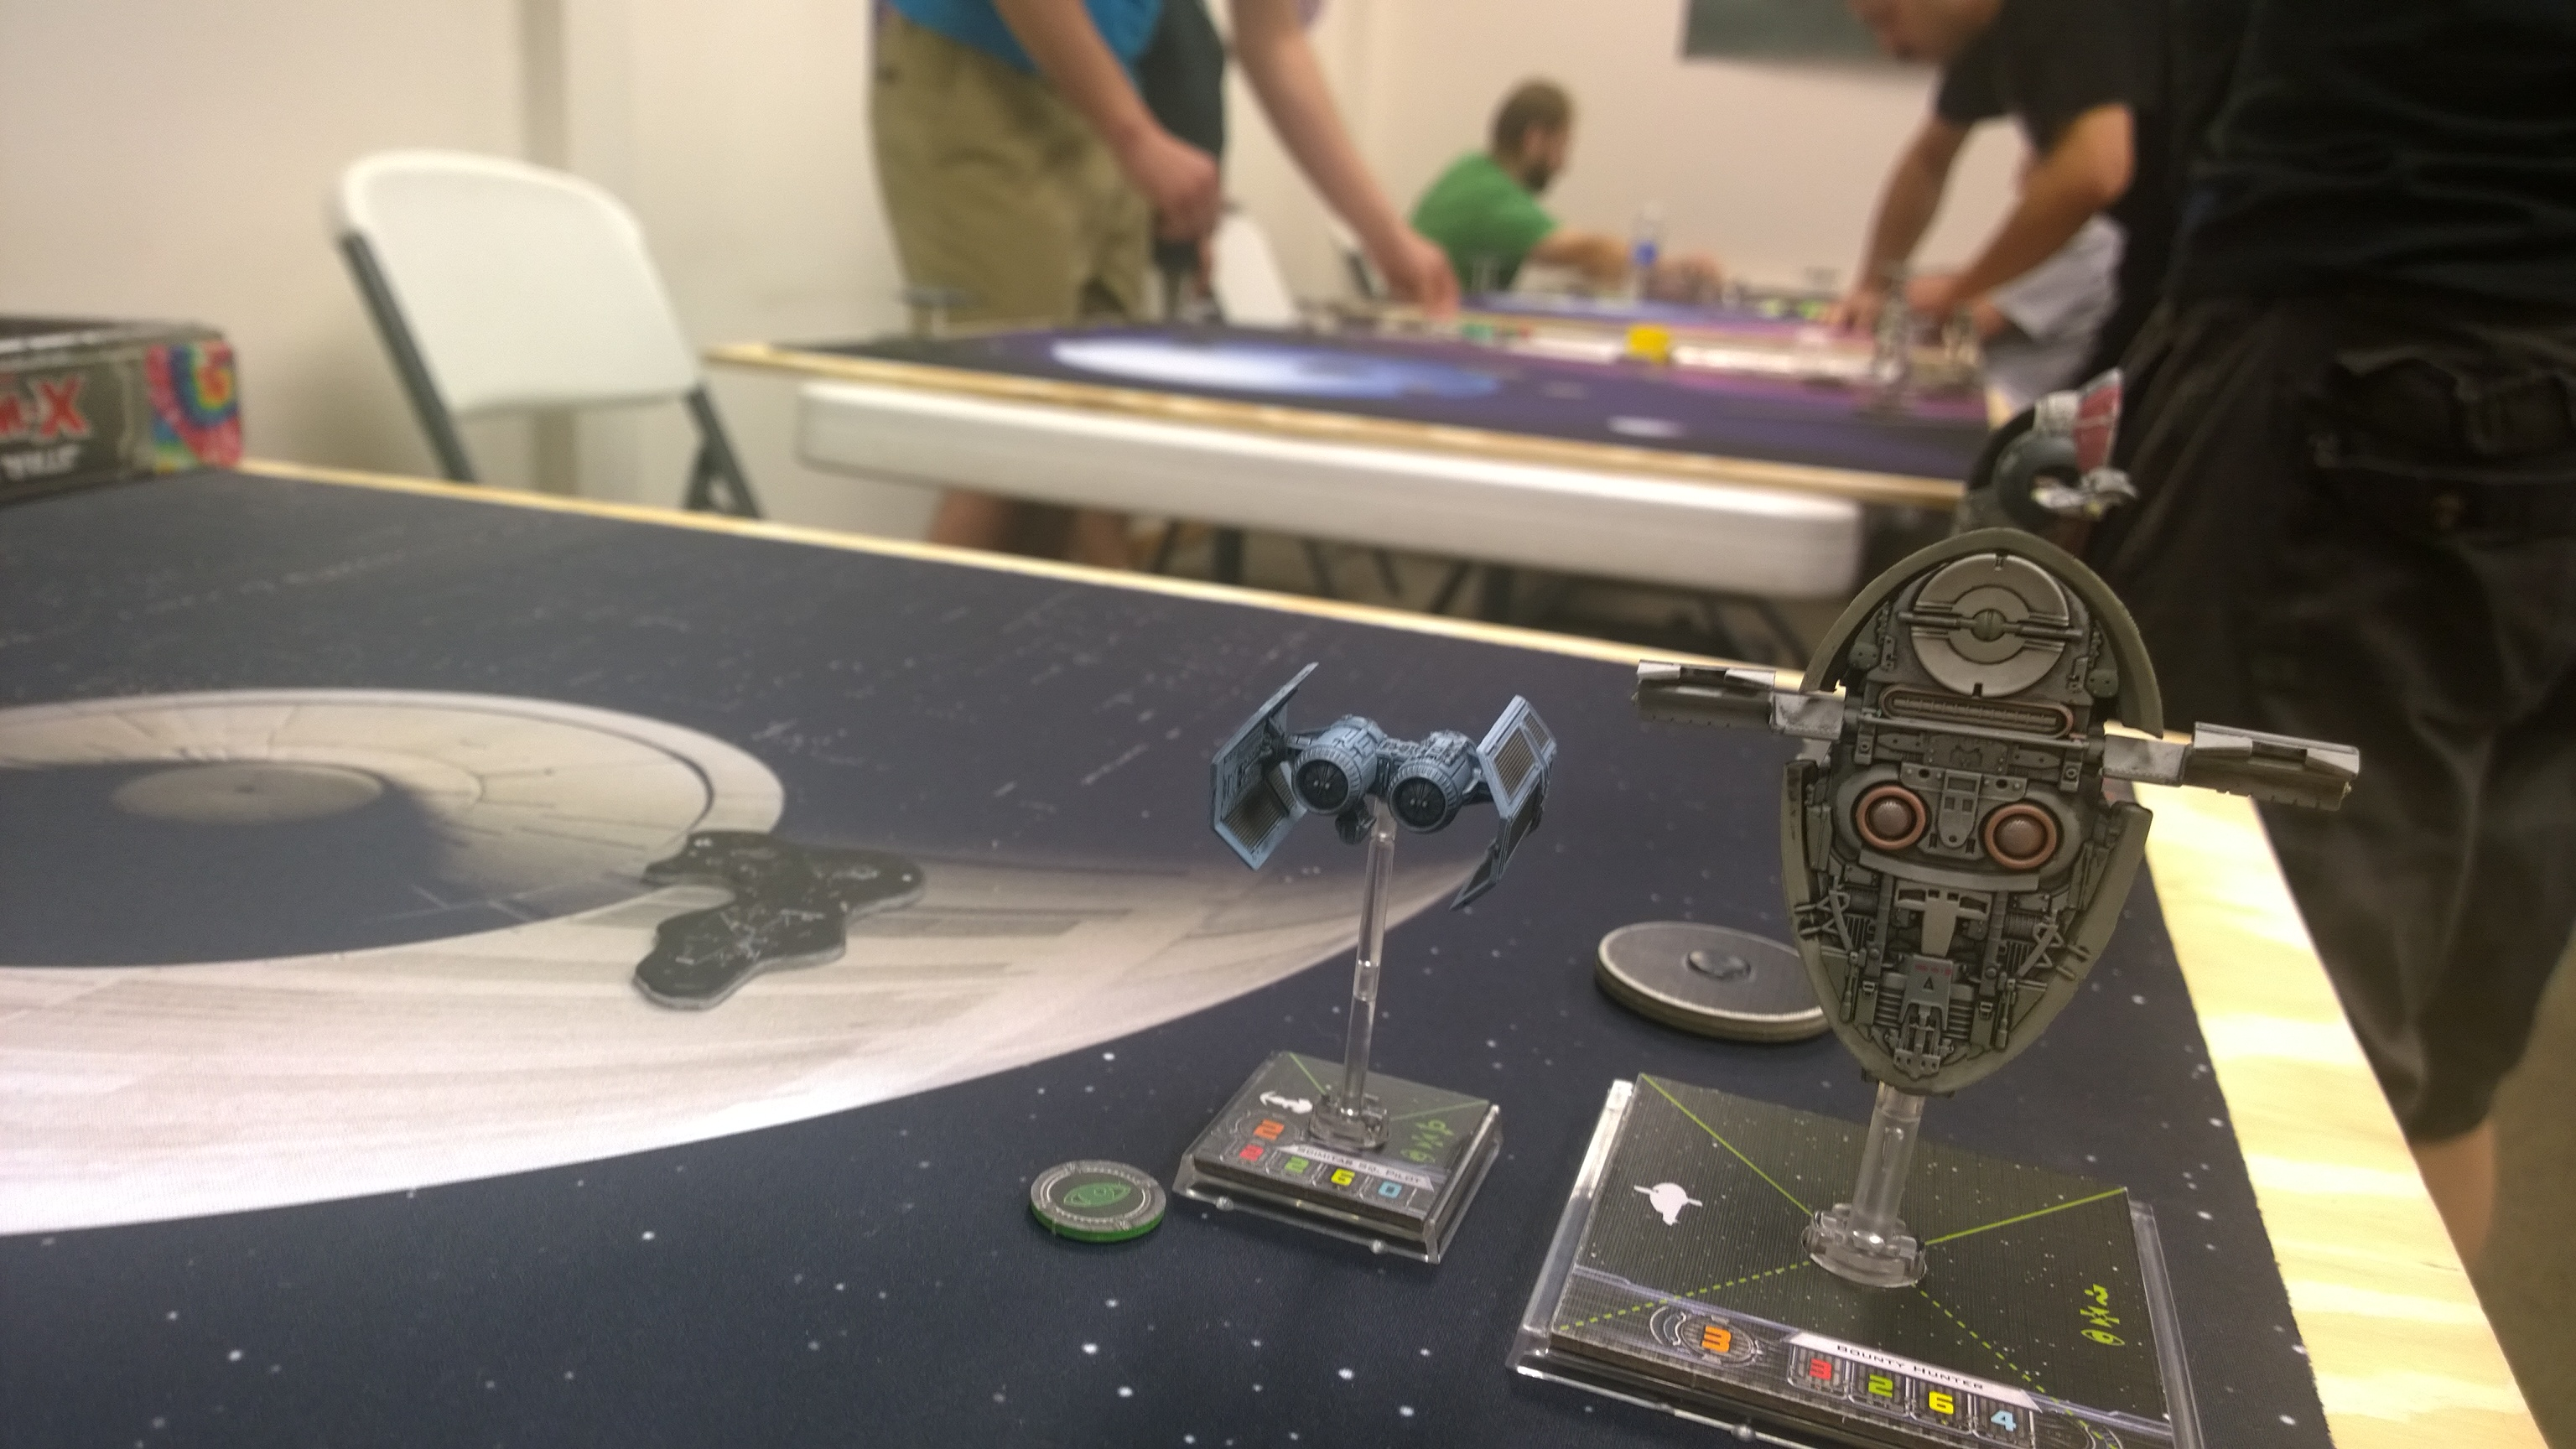 X-Wing Regionals 2015 (or Joe played like crap.)